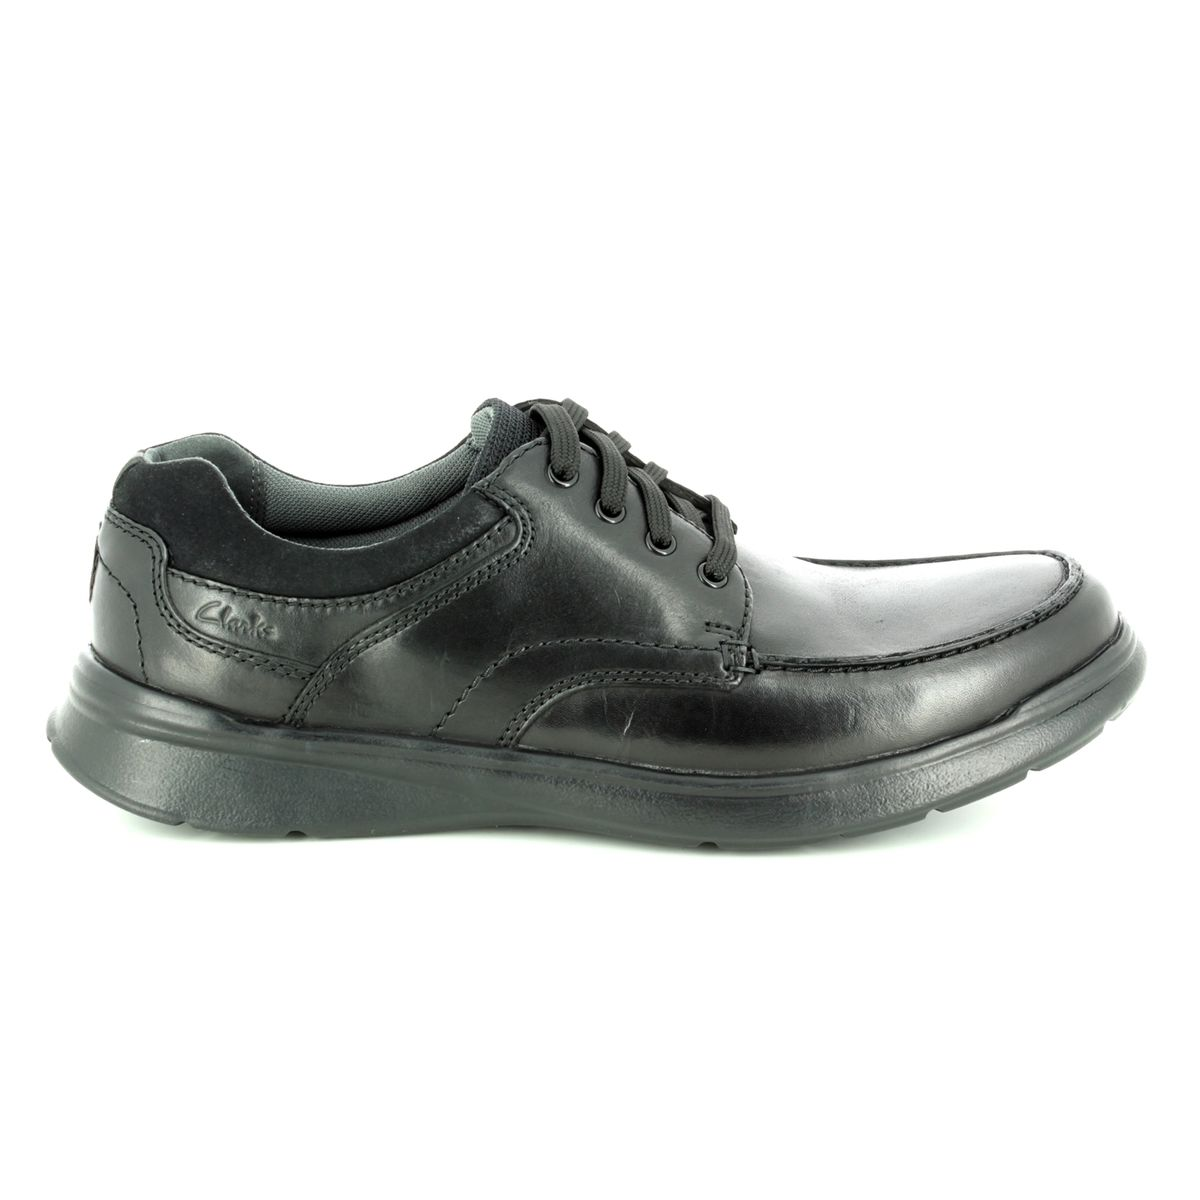 dc44ecb9069d9 Clarks Casual Shoes - Black leather - 3738 58H COTRELL EDGE